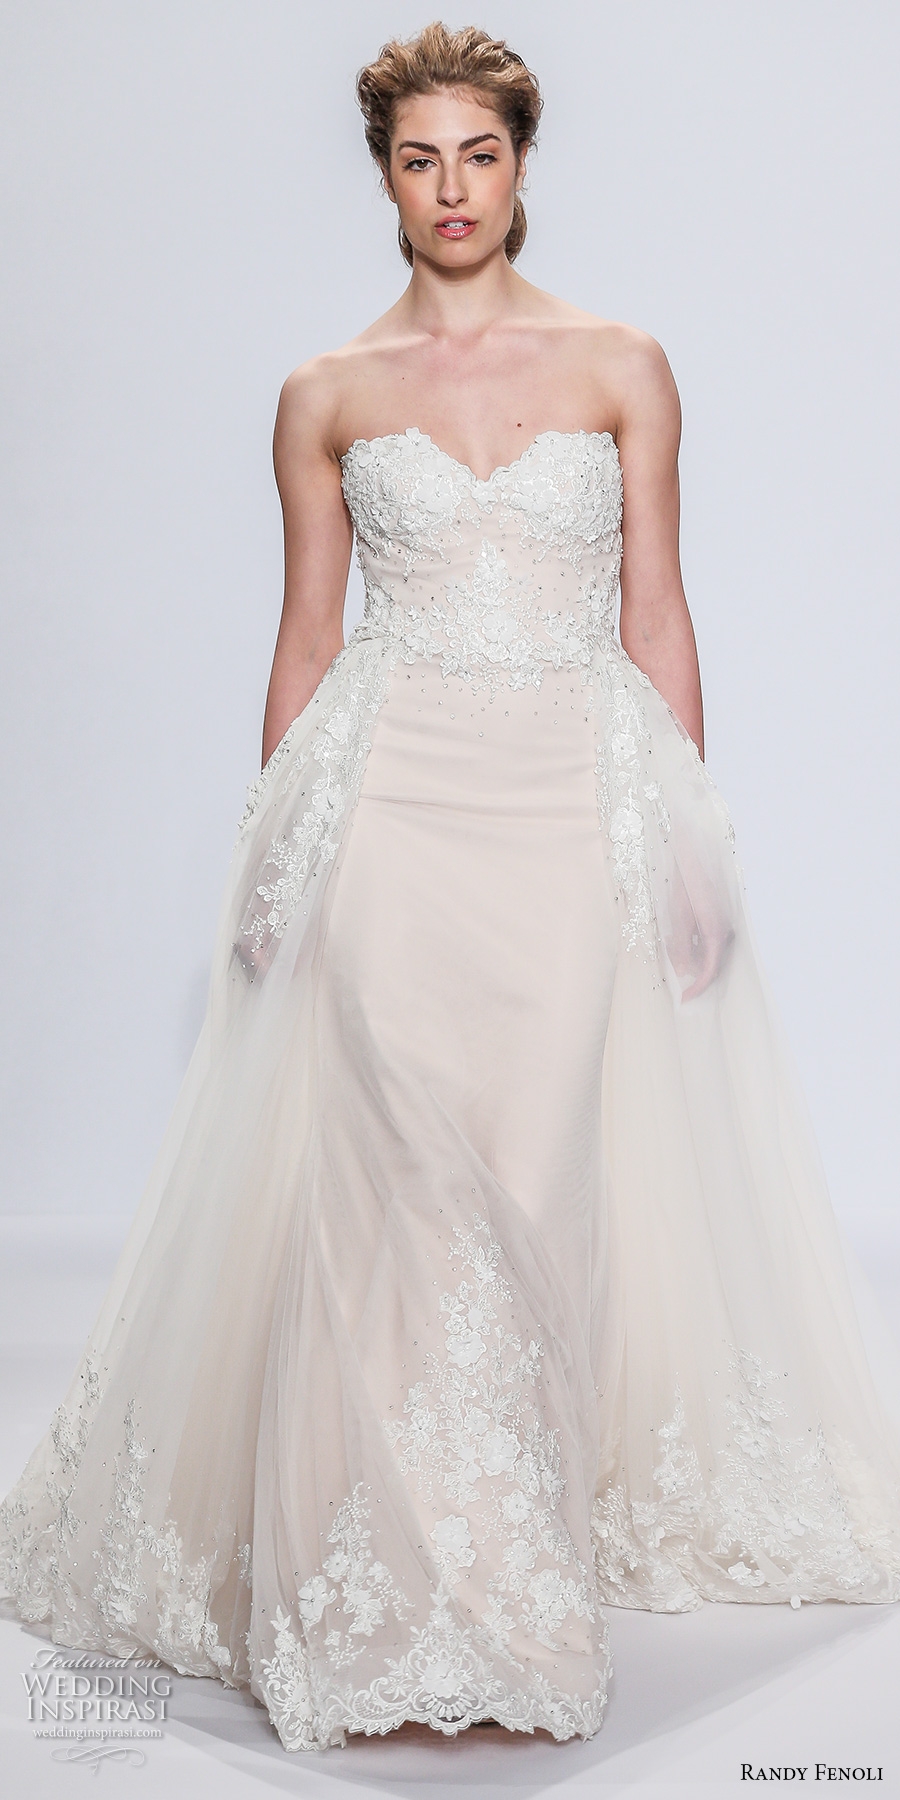 randy fenoli spring 2018 bridal strapless sweetheart neckline heavily embellished bodice elegant romantic fit and flare wedding dress a  line overskirt chapel train (03) mv